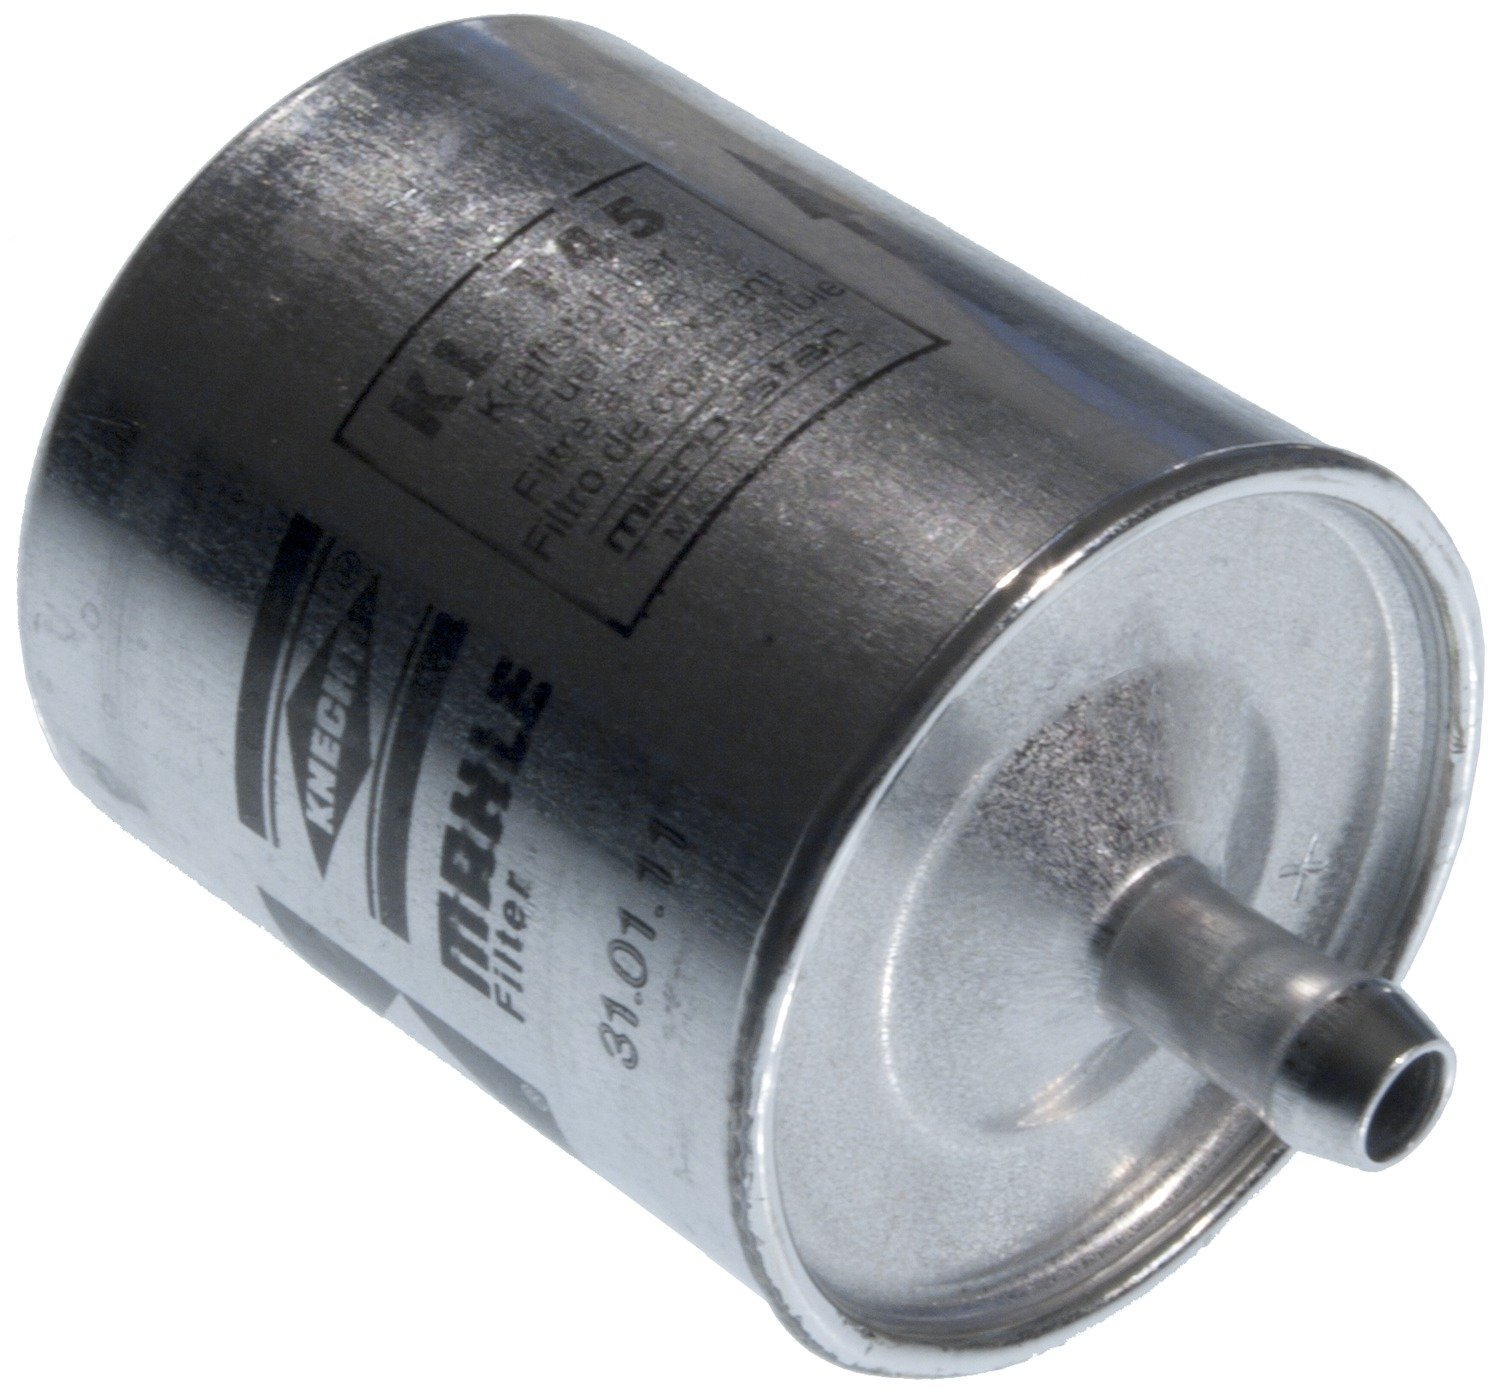 MAHLE Original KL 145 Fuel Filter